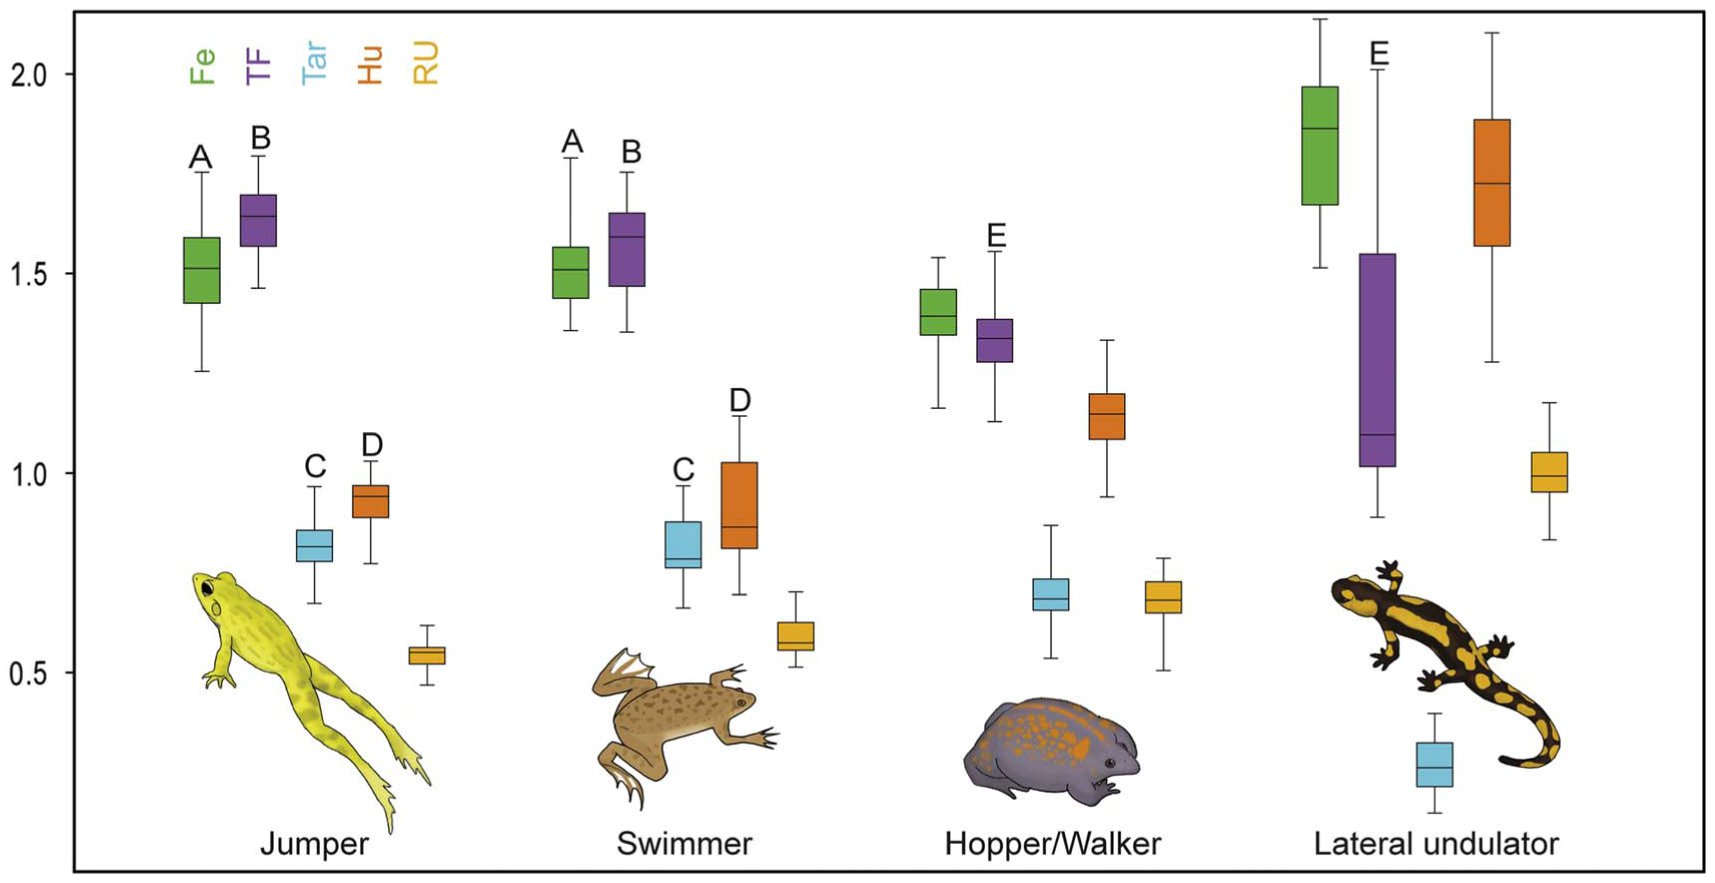 Walk before you jump: new insights on early frog locomotion from the